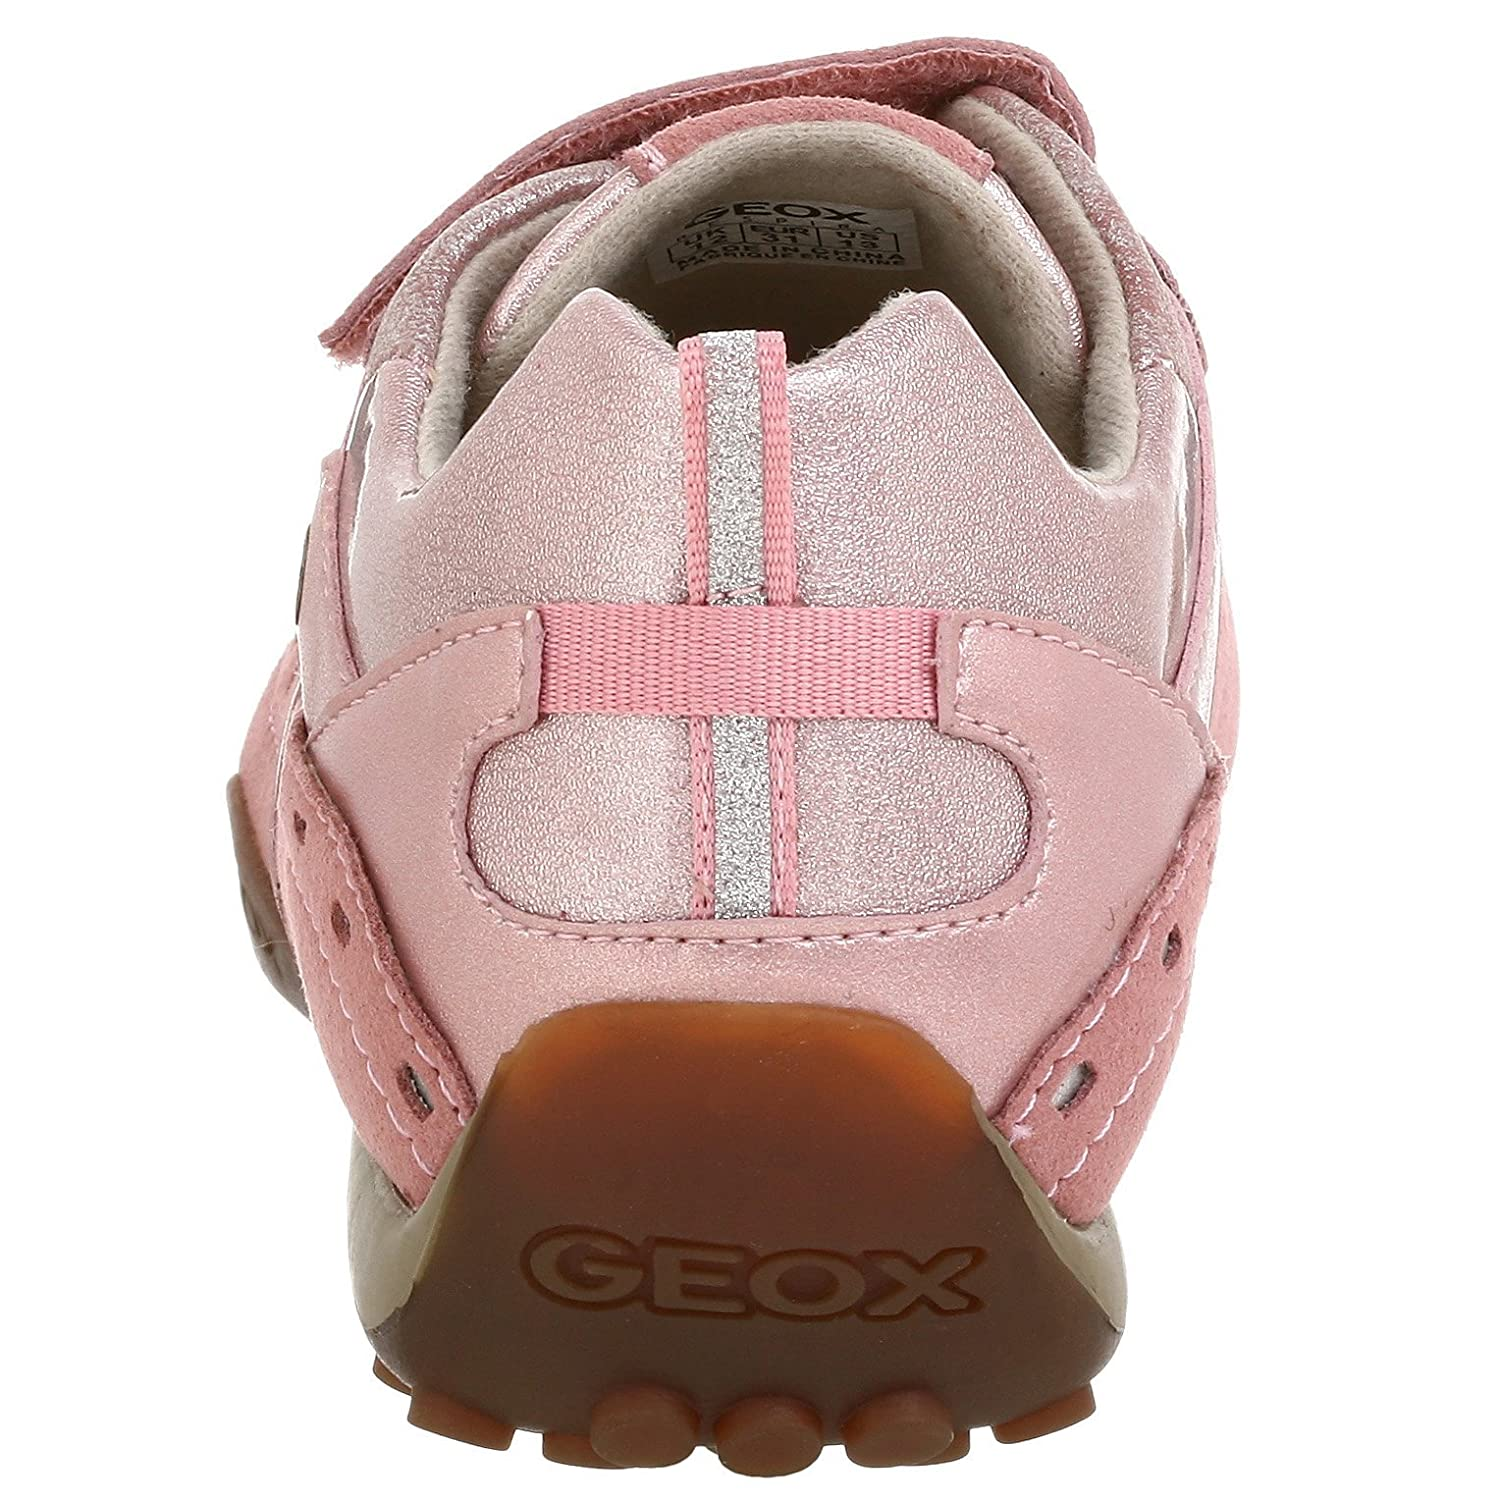 Geox Little Kid//Big Kid Snake Sneaker